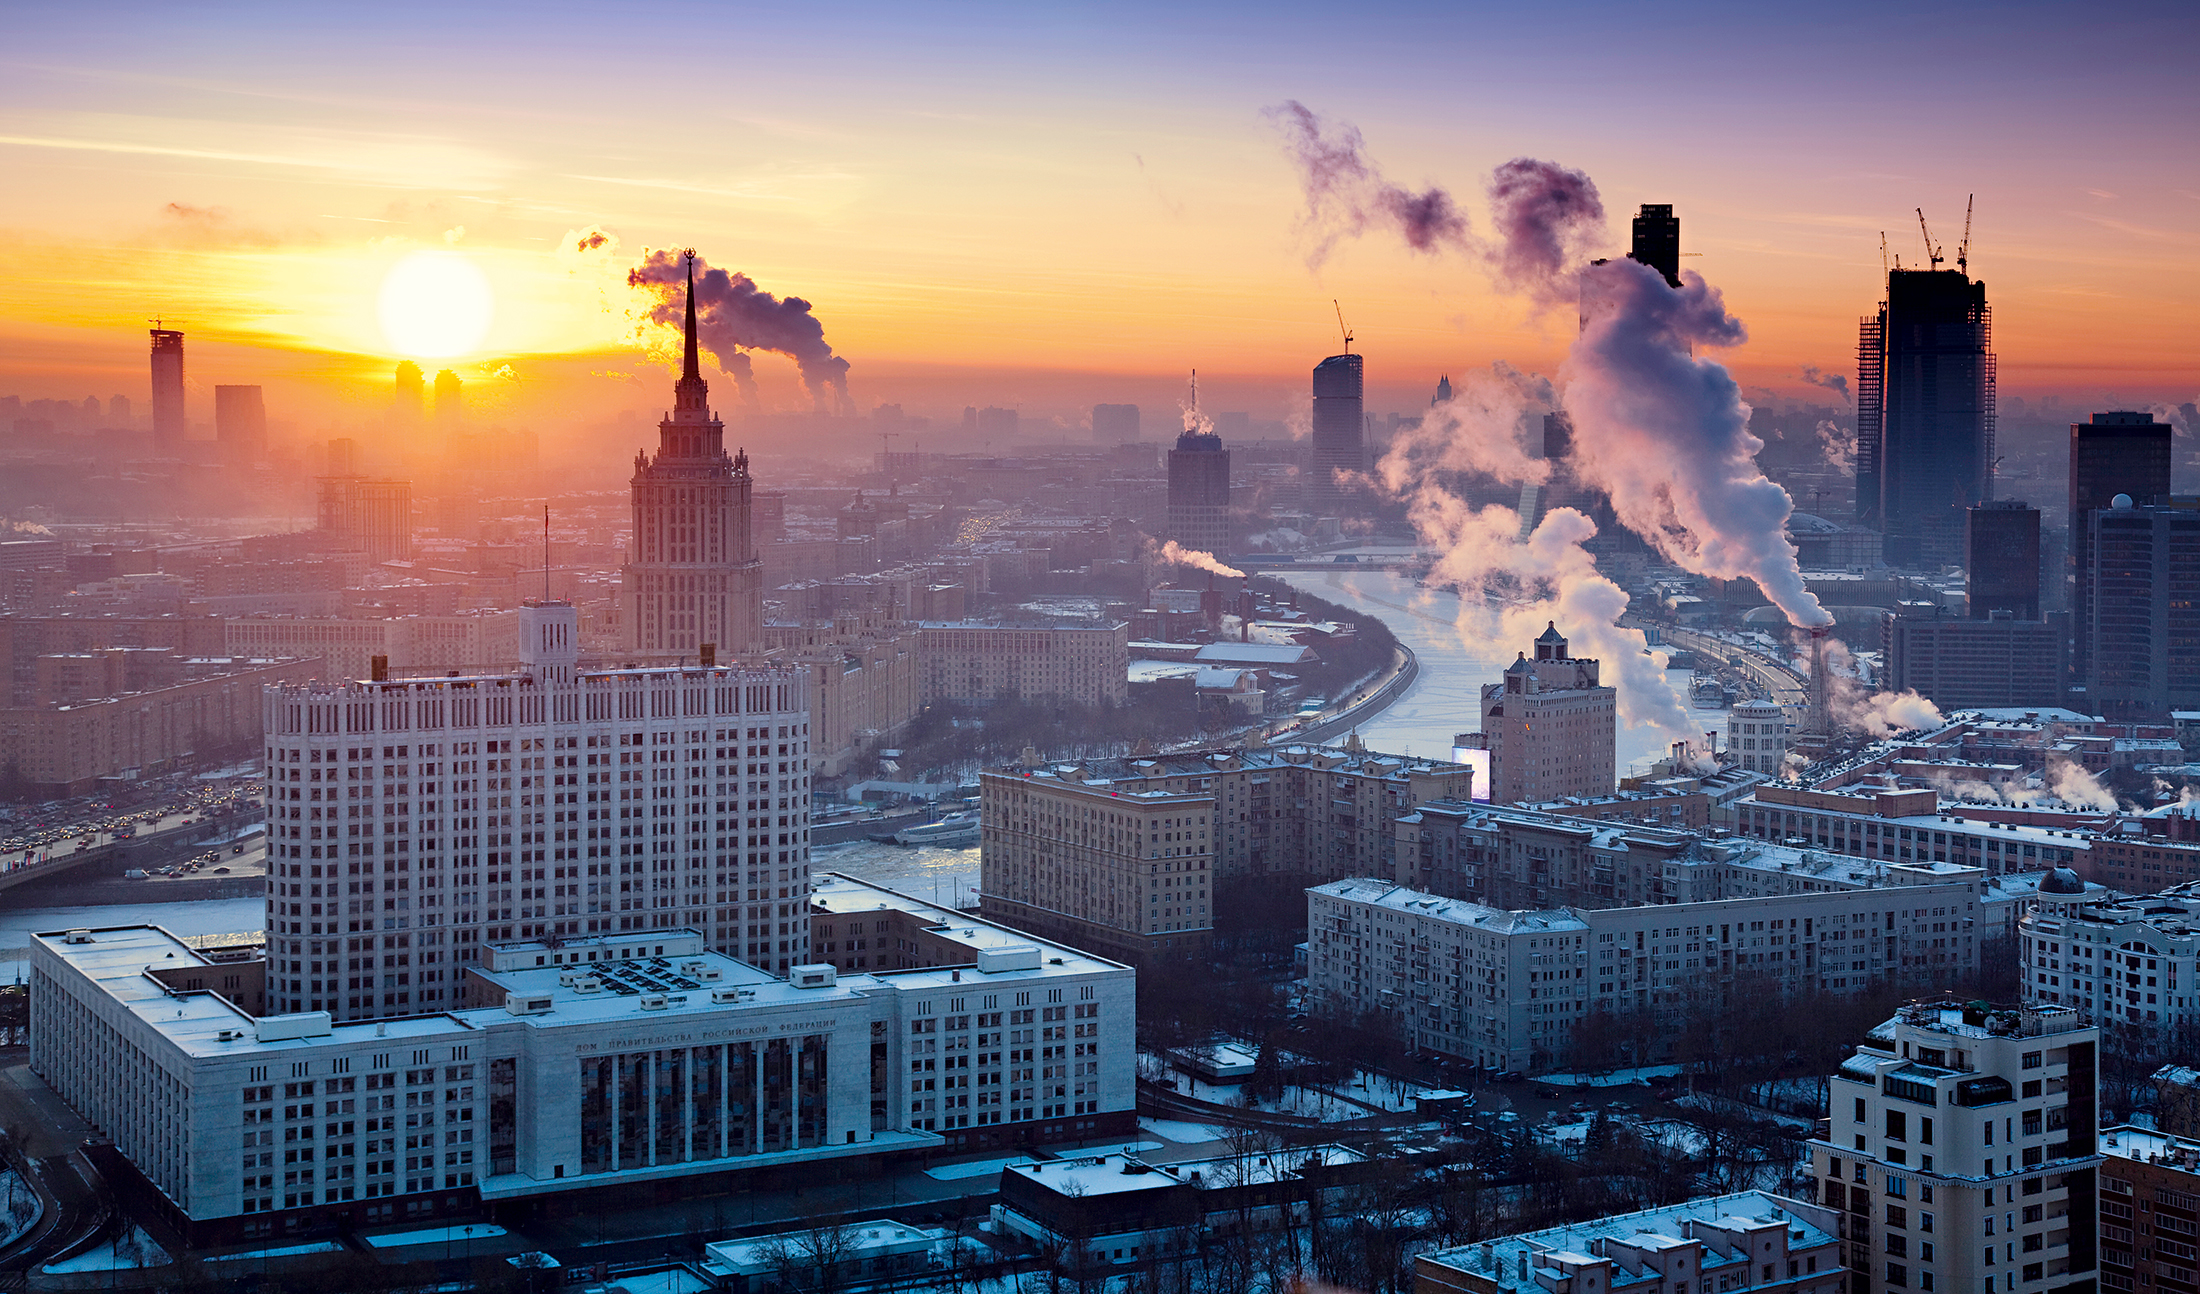 Moscow was tipped as an up-and-coming business travel destination for years, until the city was derailed by a fraught economic situation, and its progress froze. Matt Timms looks at the city's plans to restore its reputation